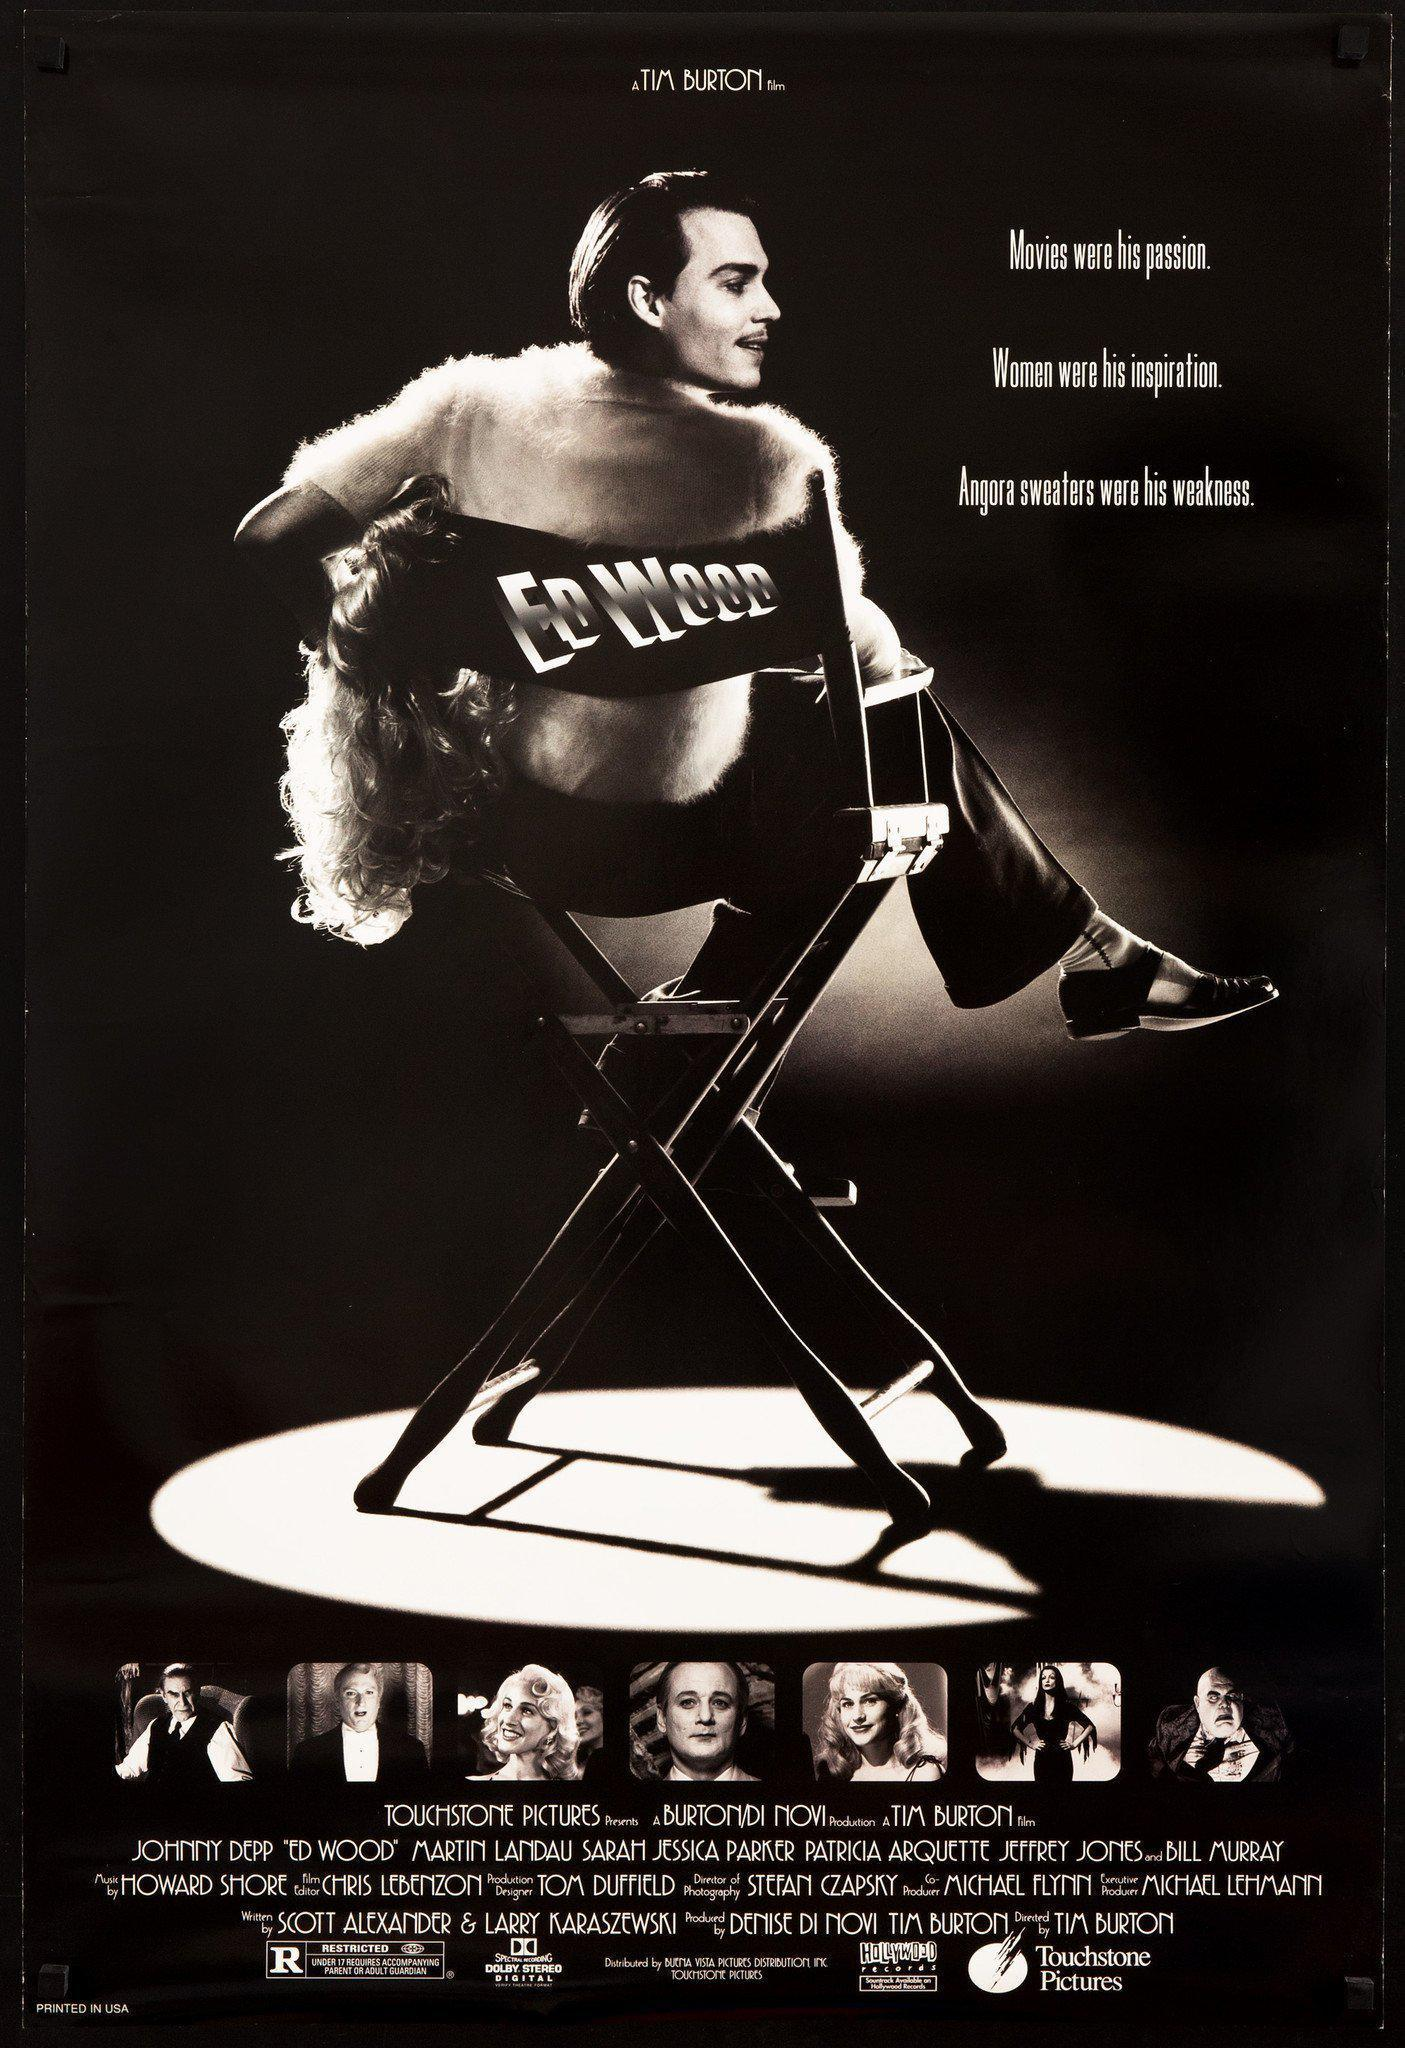 ed wood poster Filmography: Tim Burton Has Always Found Dreams in Reality